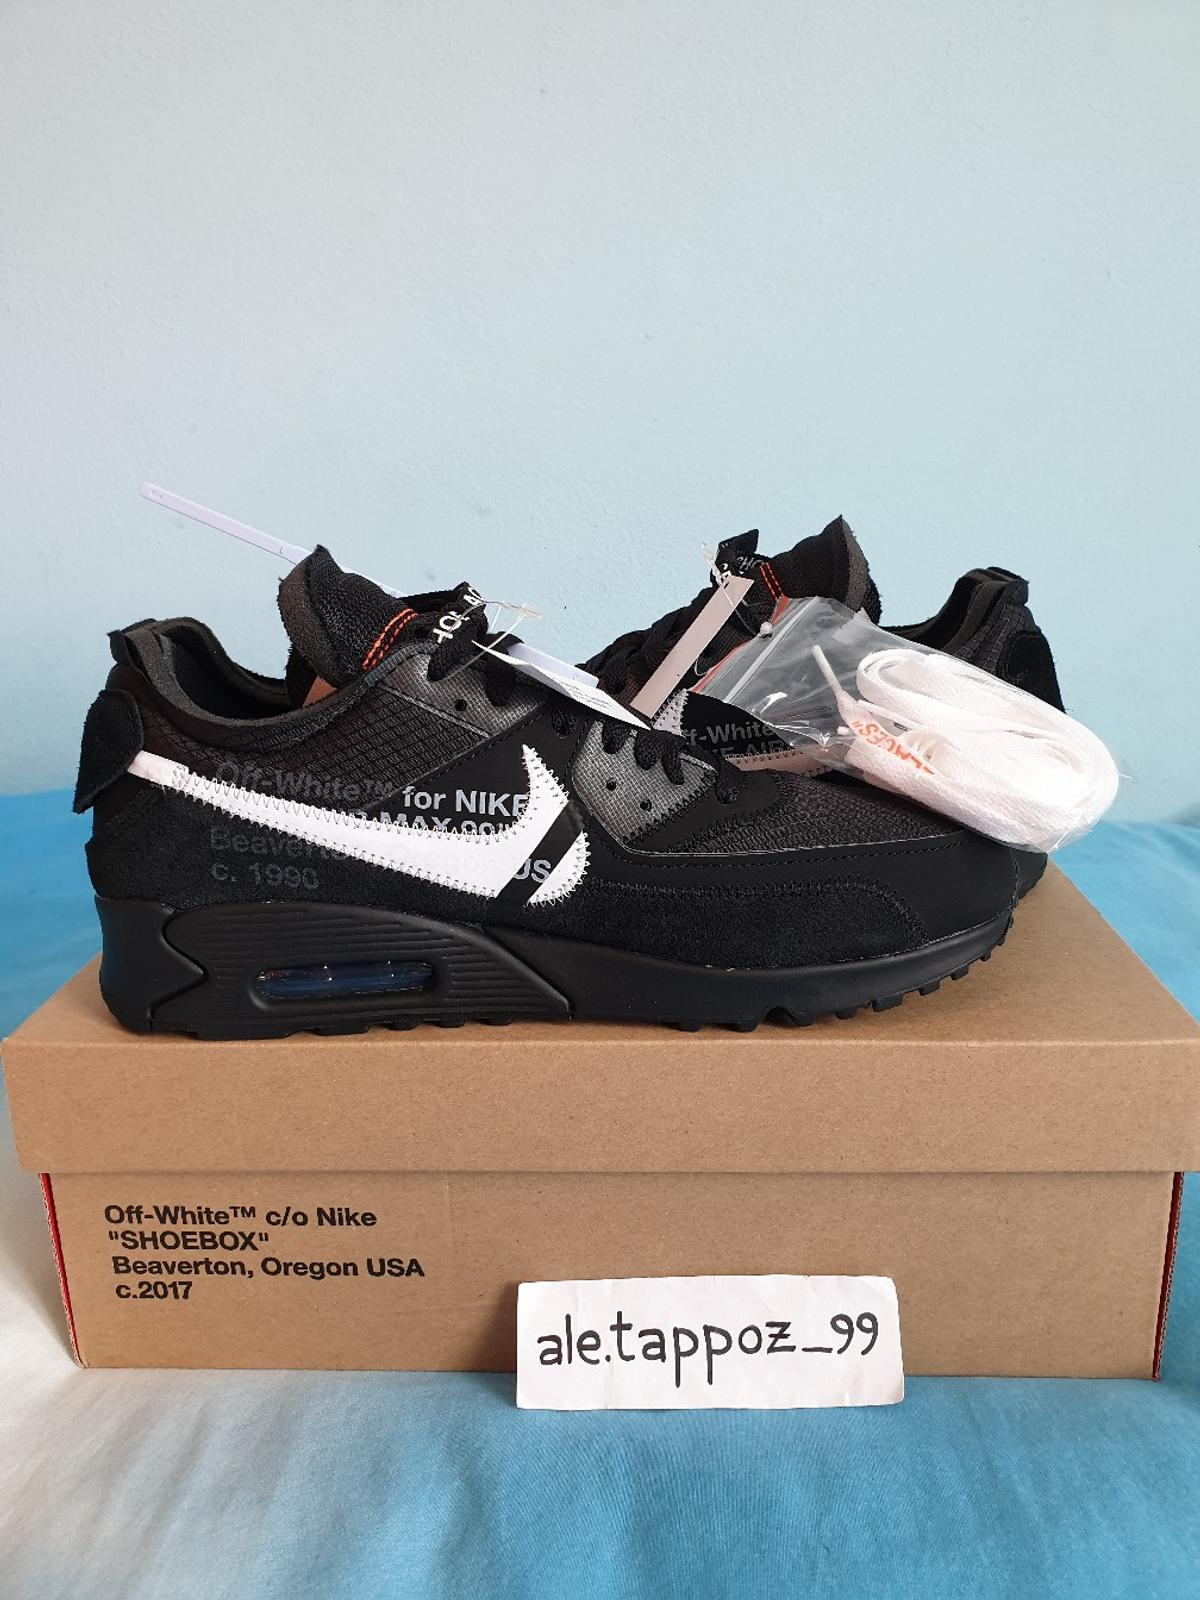 WTS] Nike Air Max 90 x Off White Black in 27029 Vigevano for